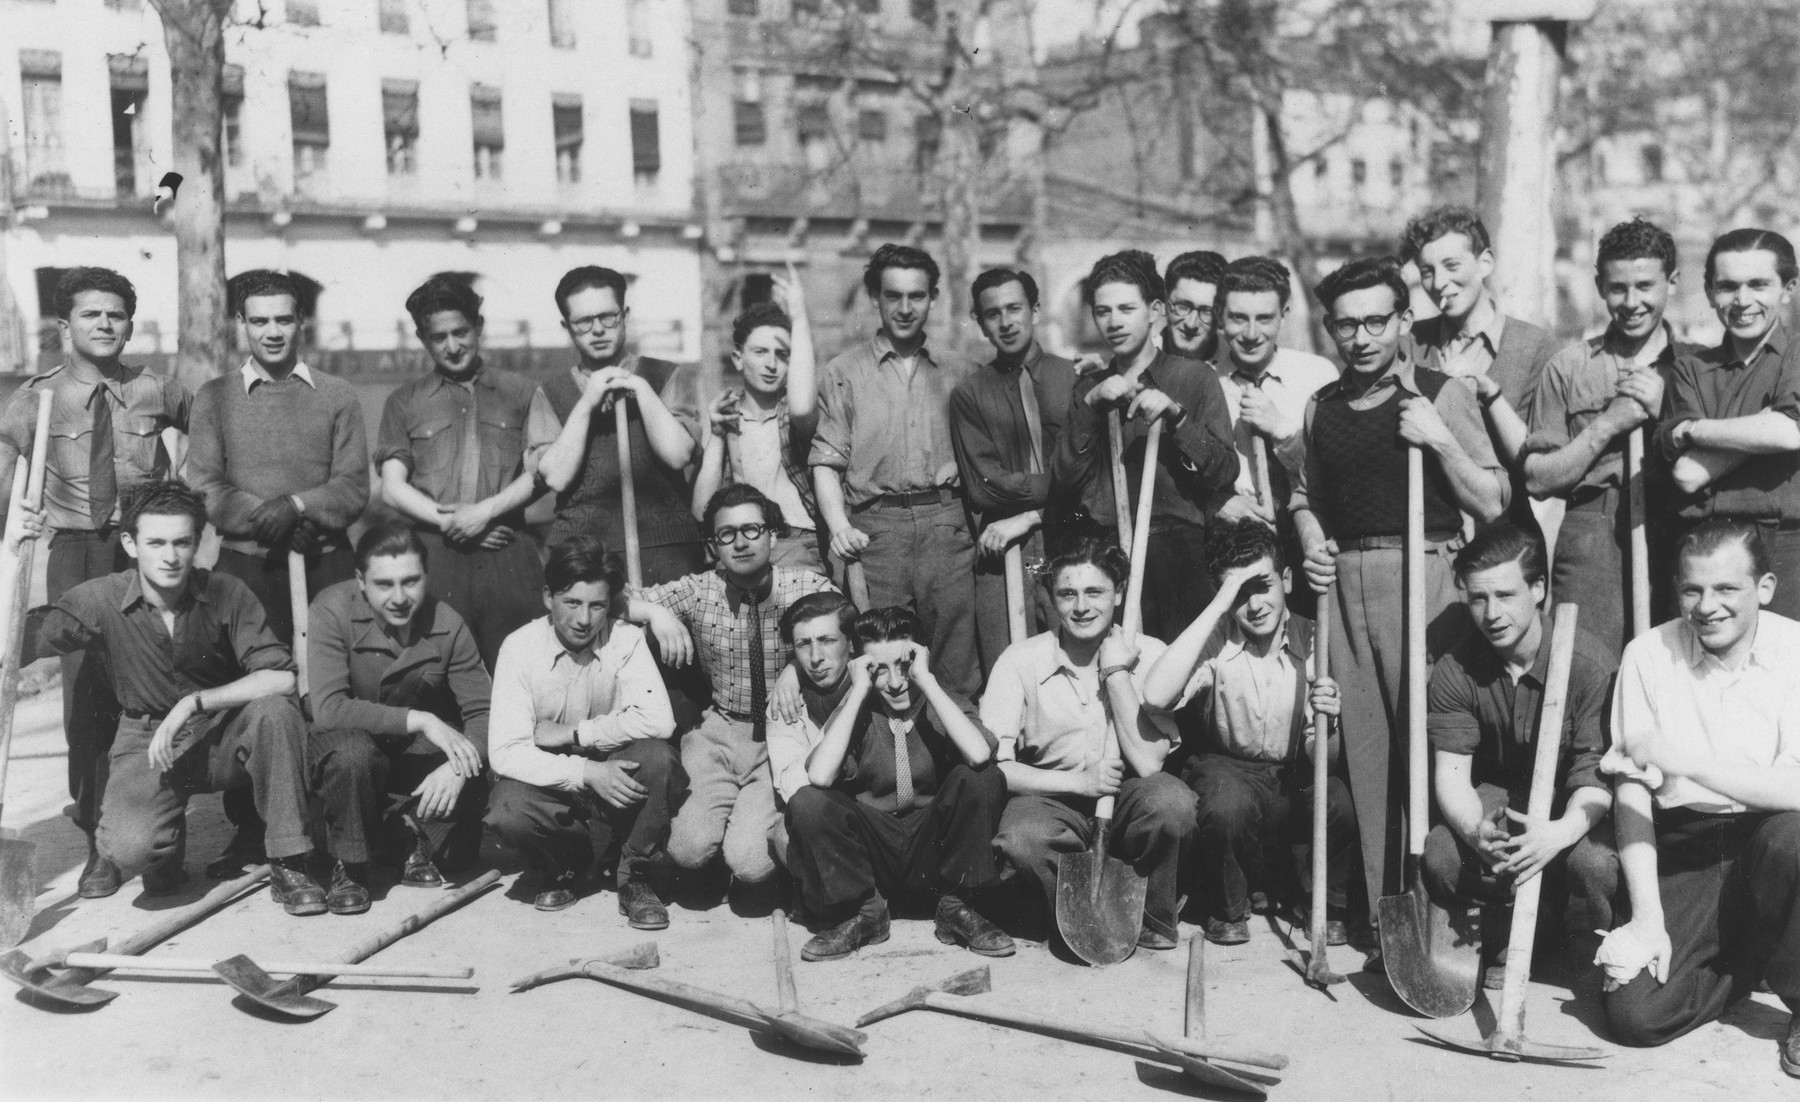 A group of Jewish boys from the Union de la Jeunesse Juif poses with shovels that they are using to fill in trenches after the war.